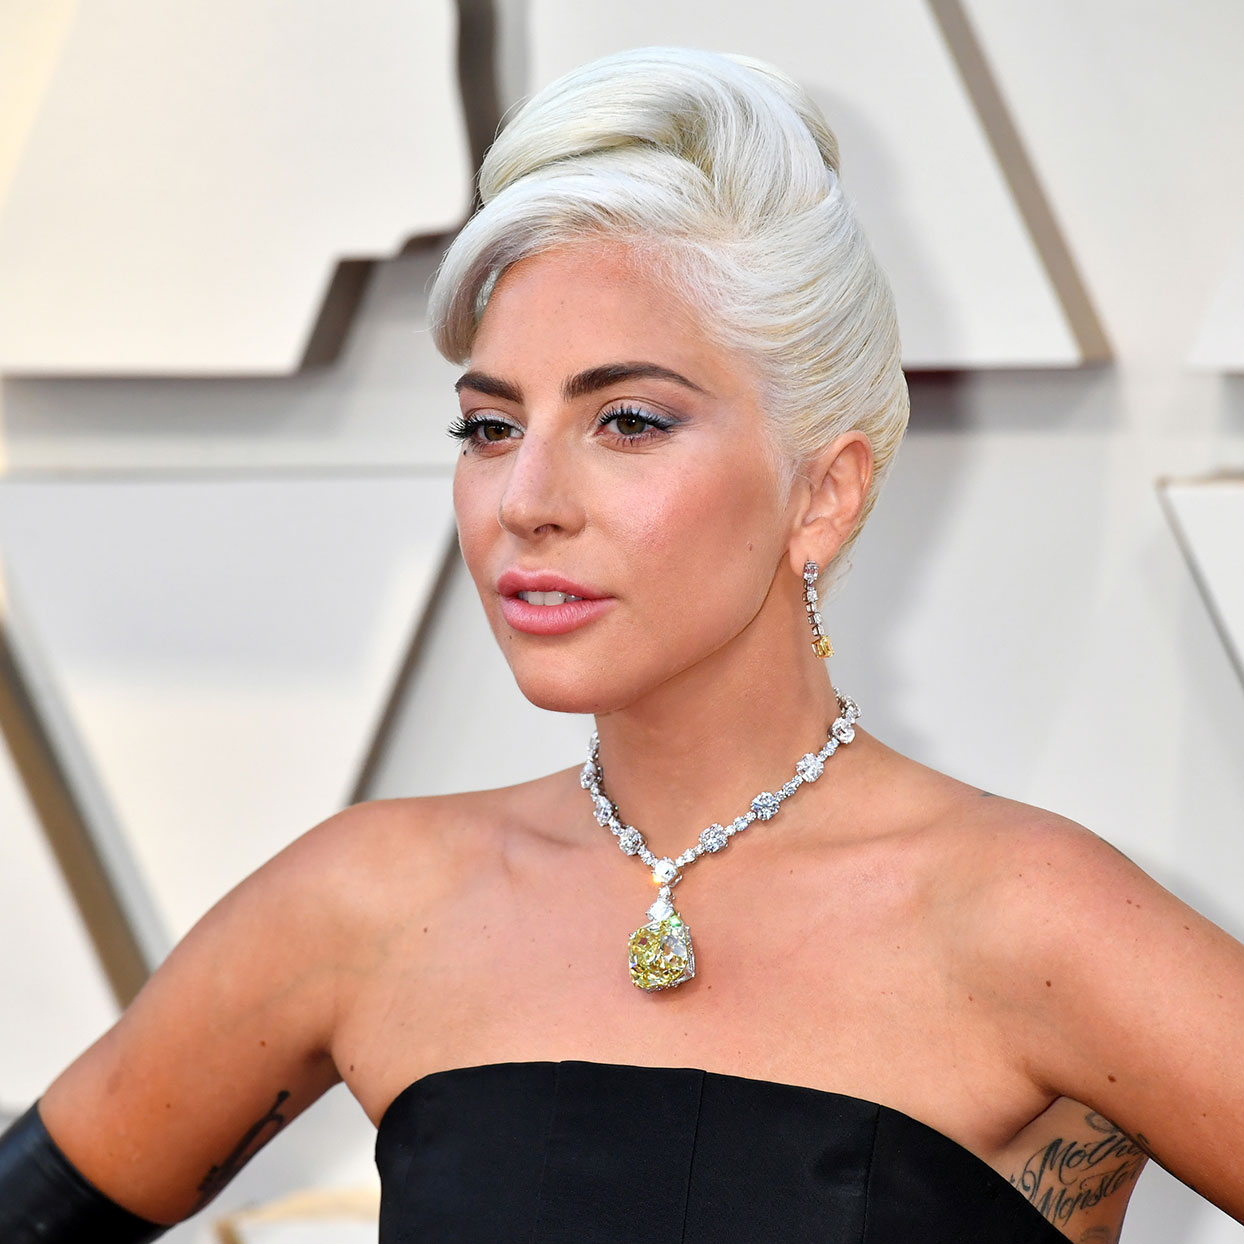 Lady Gaga's Secret Bolognese Sauce Ingredient Is So Relatable